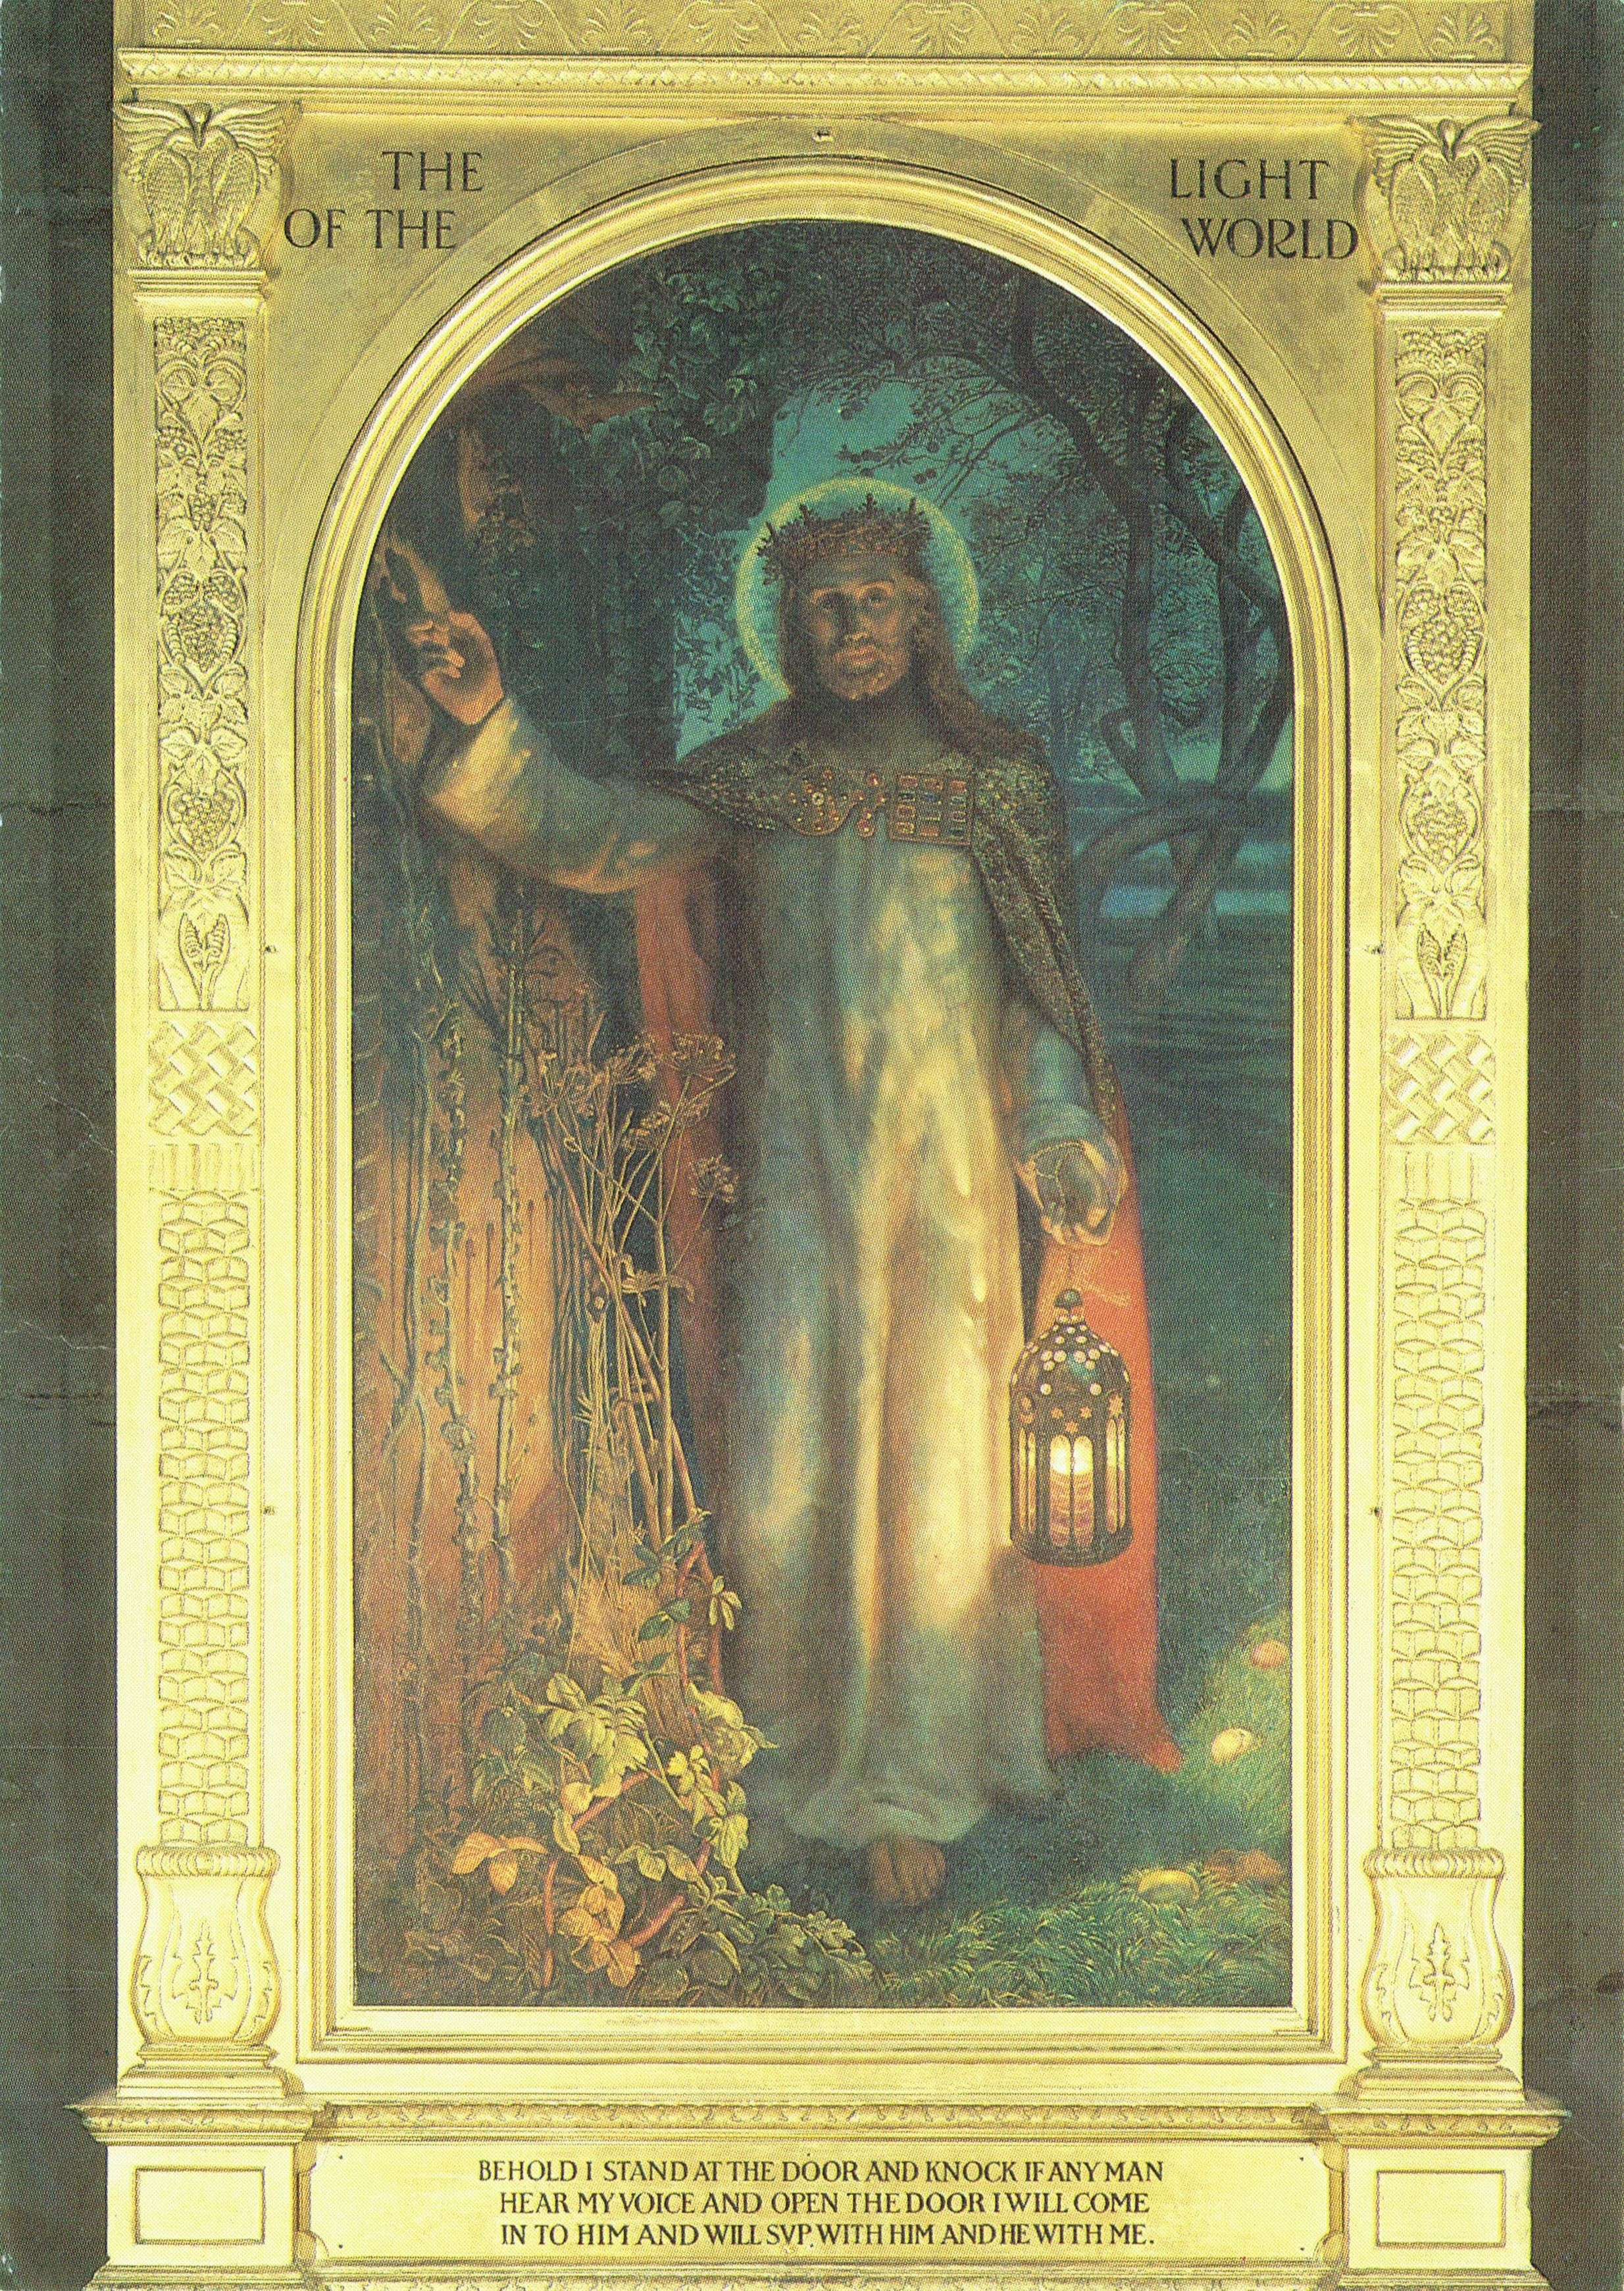 The Light Of The World By Holman Hunt Painted 1900 From Original